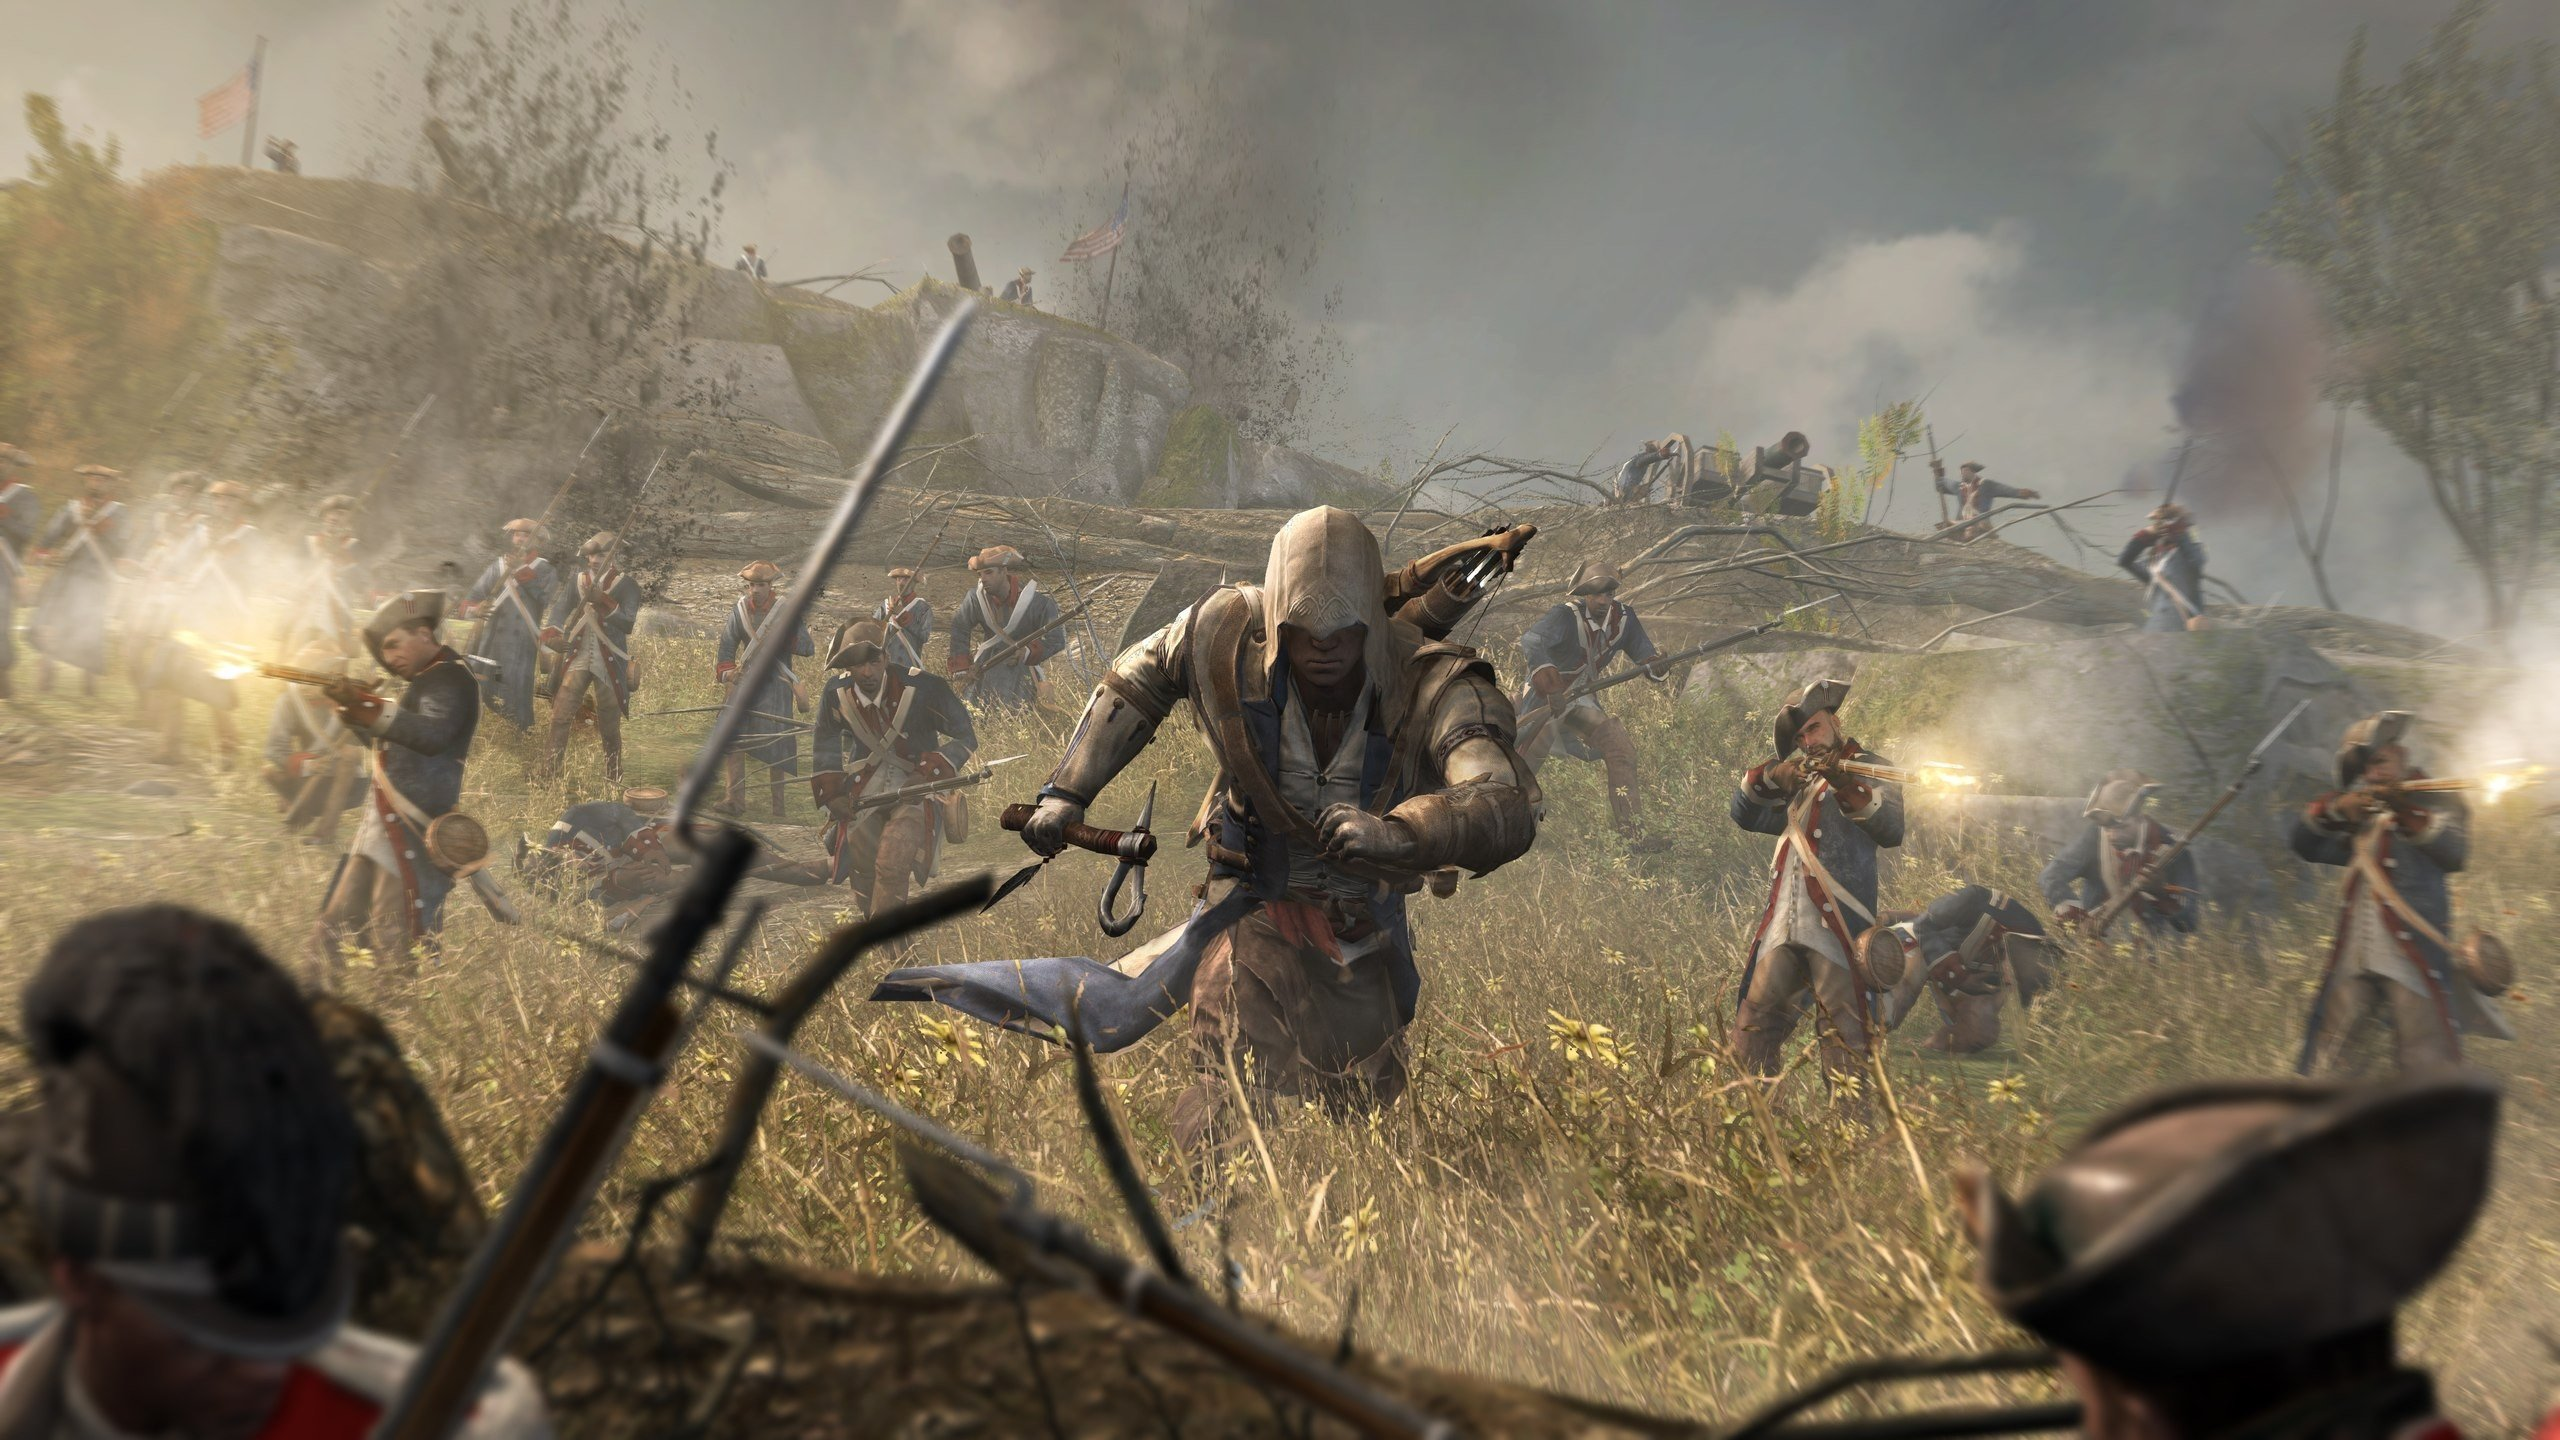 Free Download Assassins Creed 3 Wallpaper ID447307 Hd 2560x1440 For PC